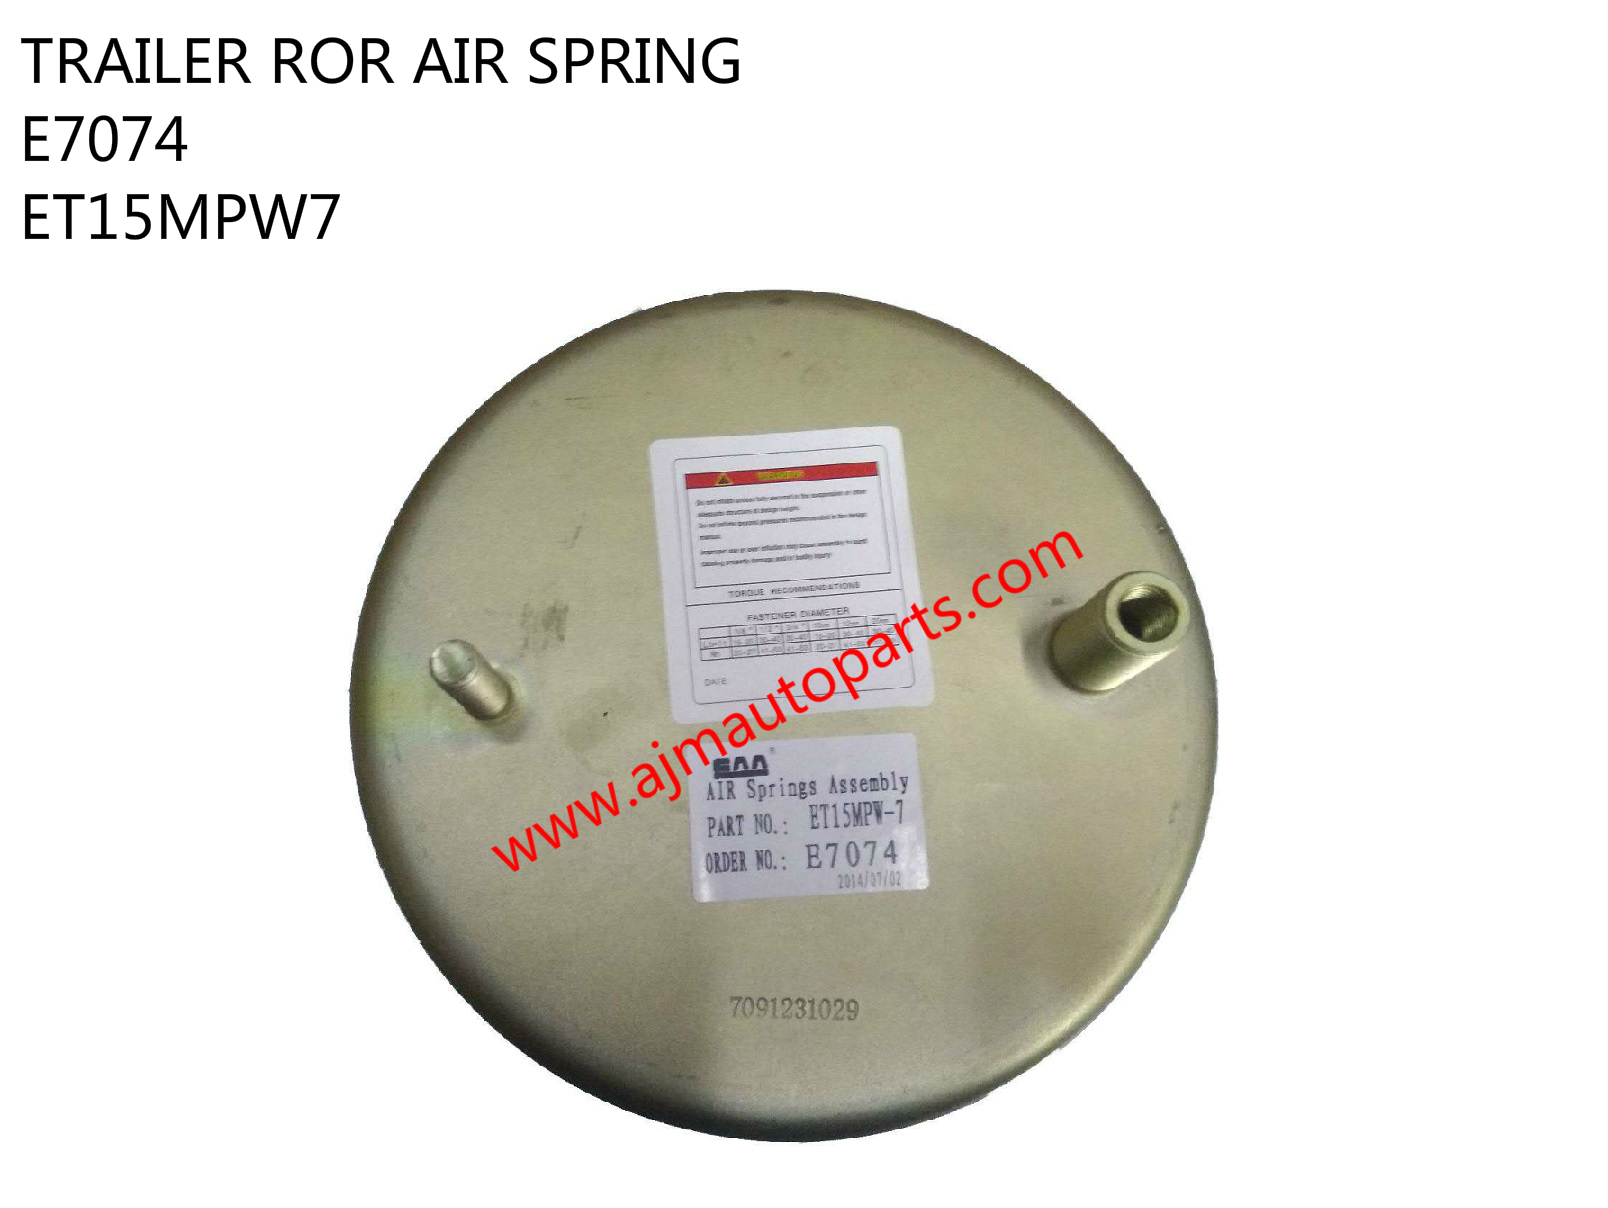 TRAILER ROR AIR SPRING-E7074